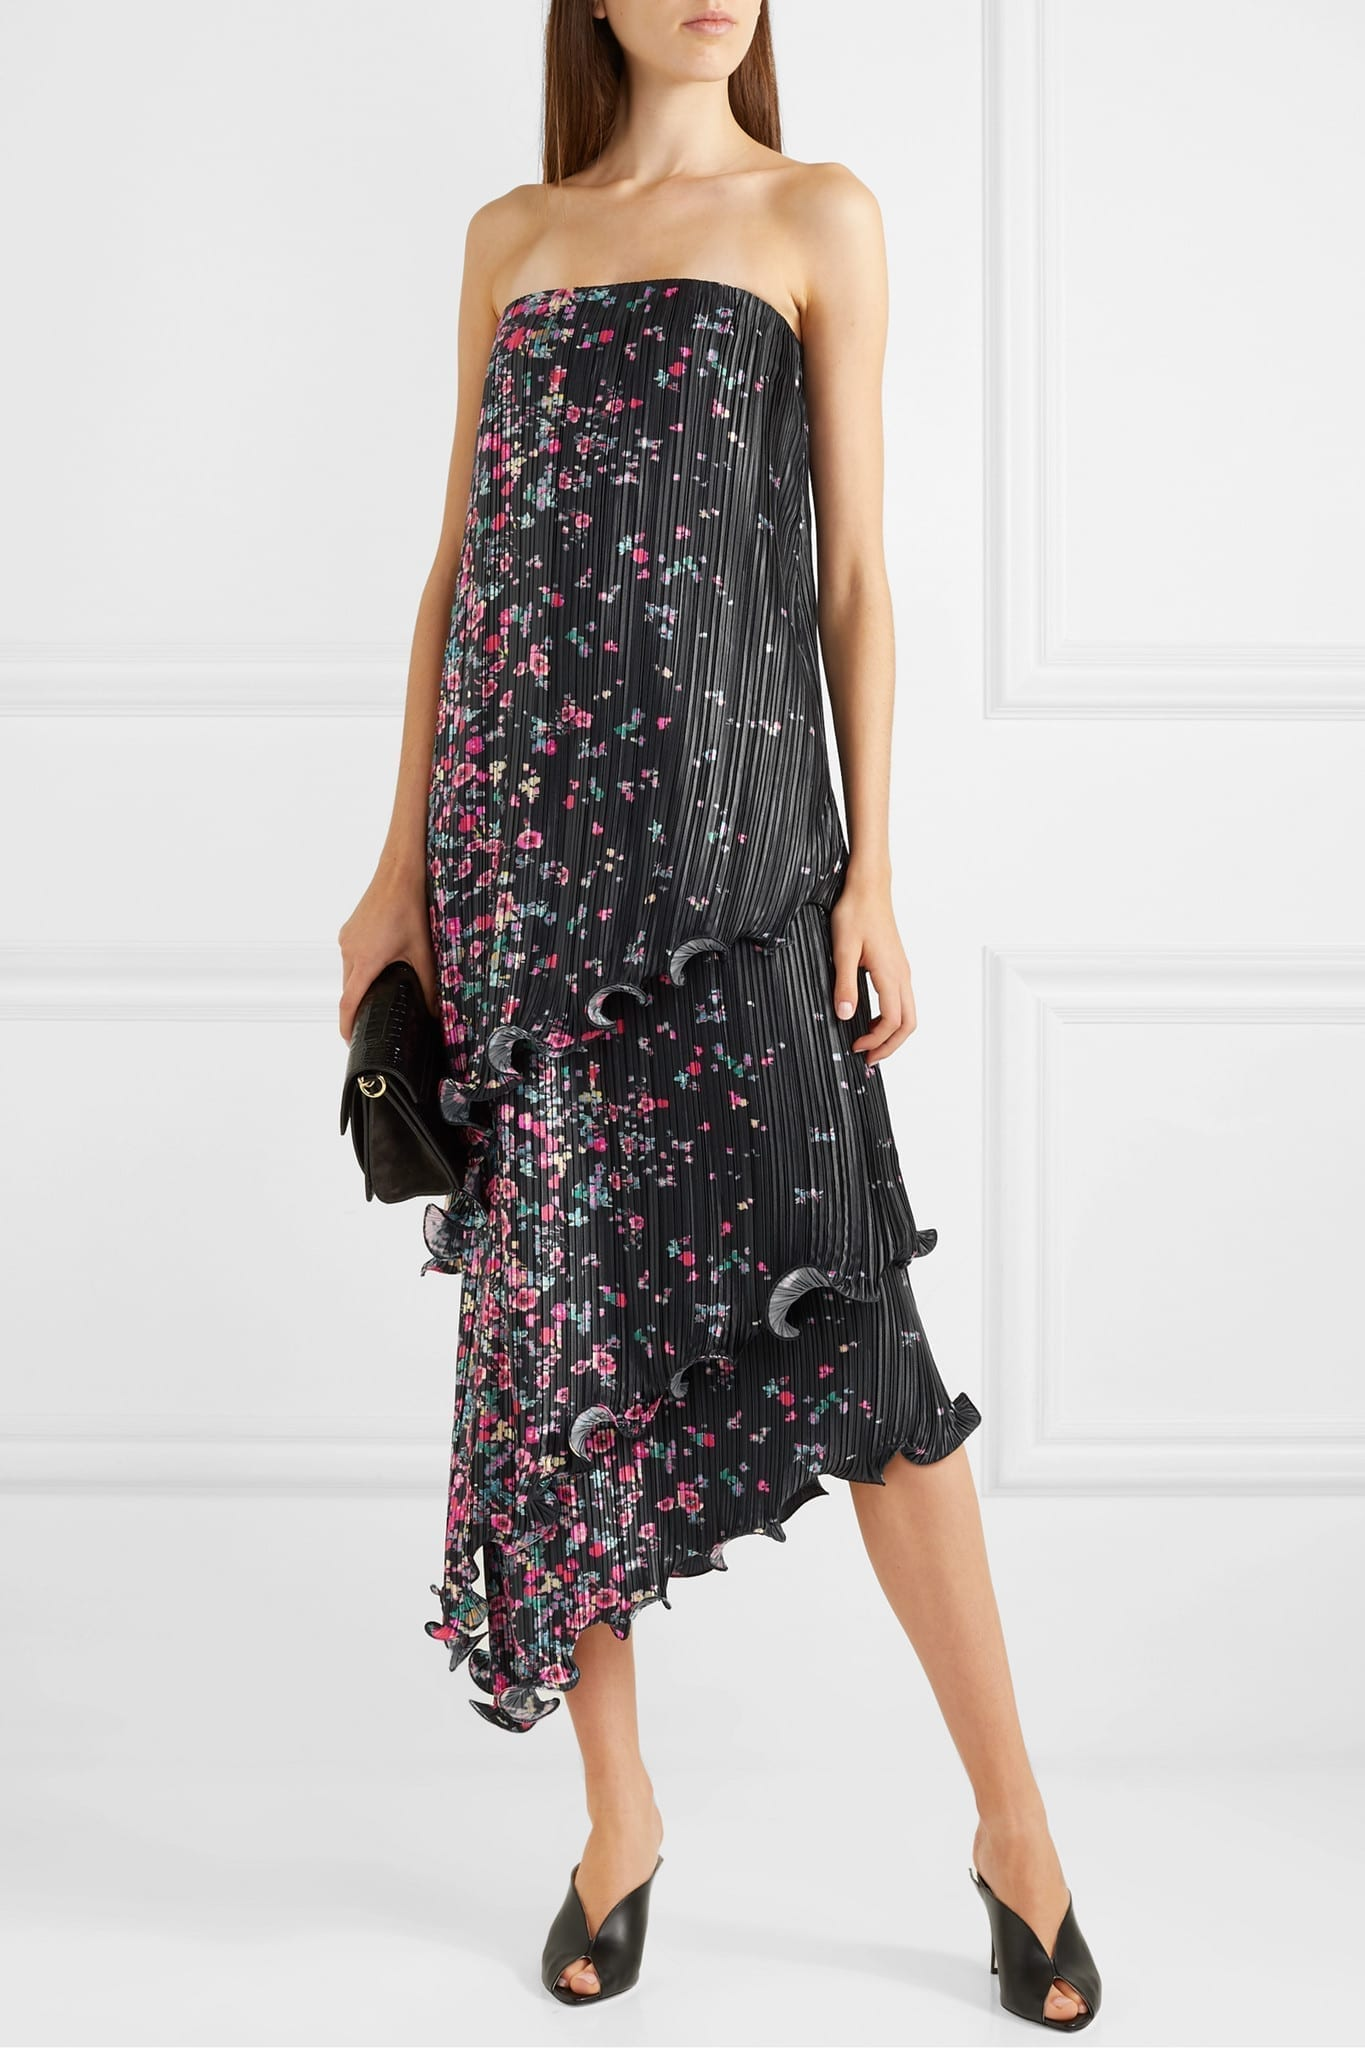 GIVENCHY Strapless Asymmetric Ruffled Floral-print Plissé-satin Dress